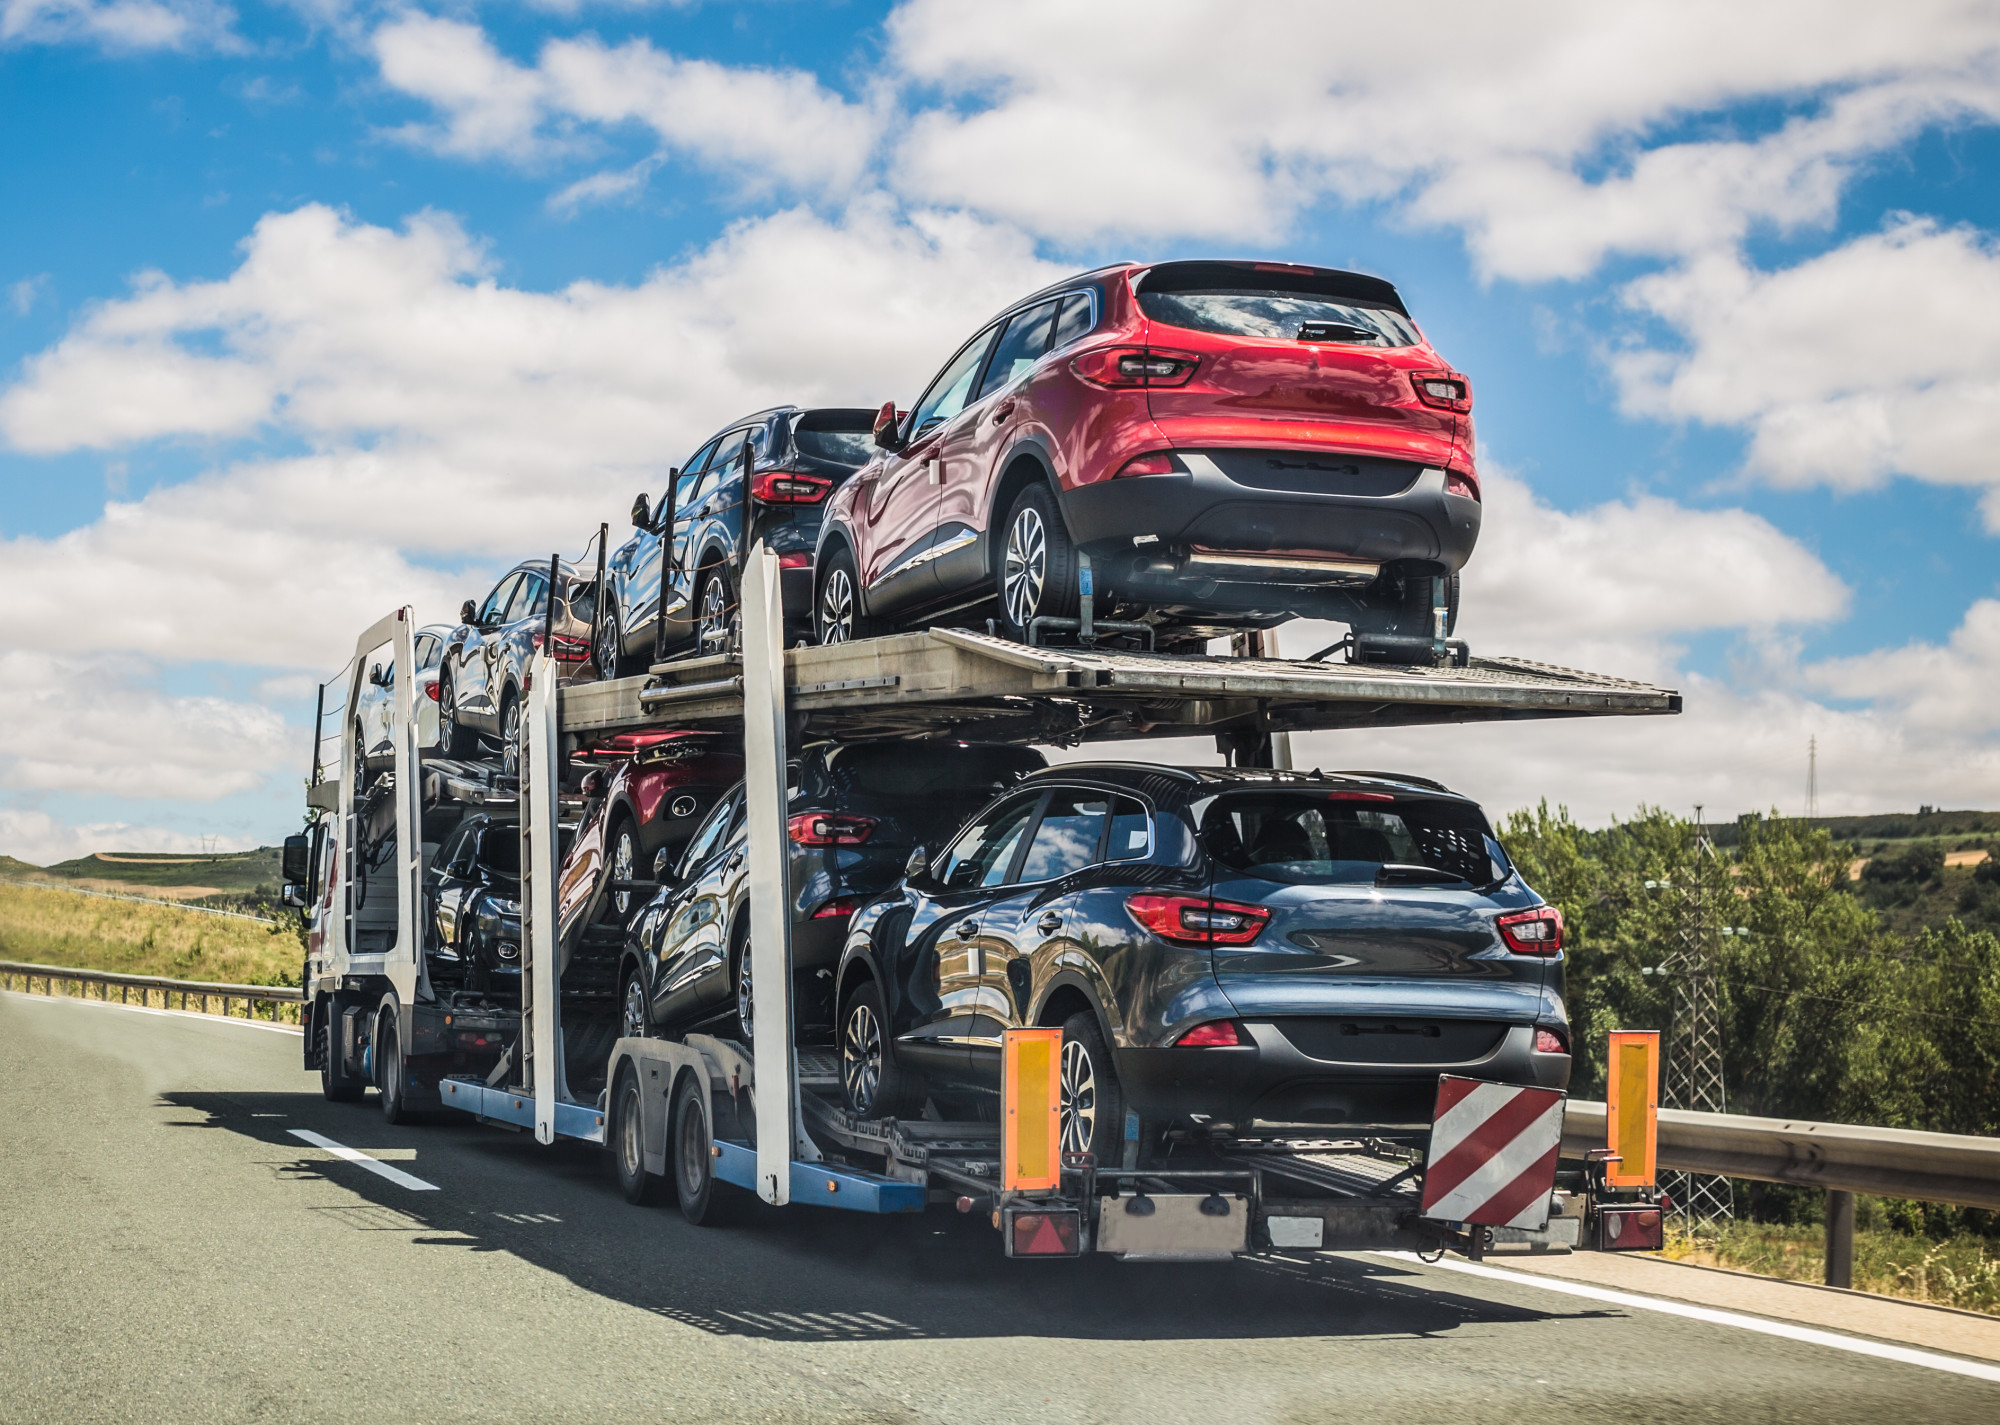 5 Key Benefits of Using a Car Shipping Service